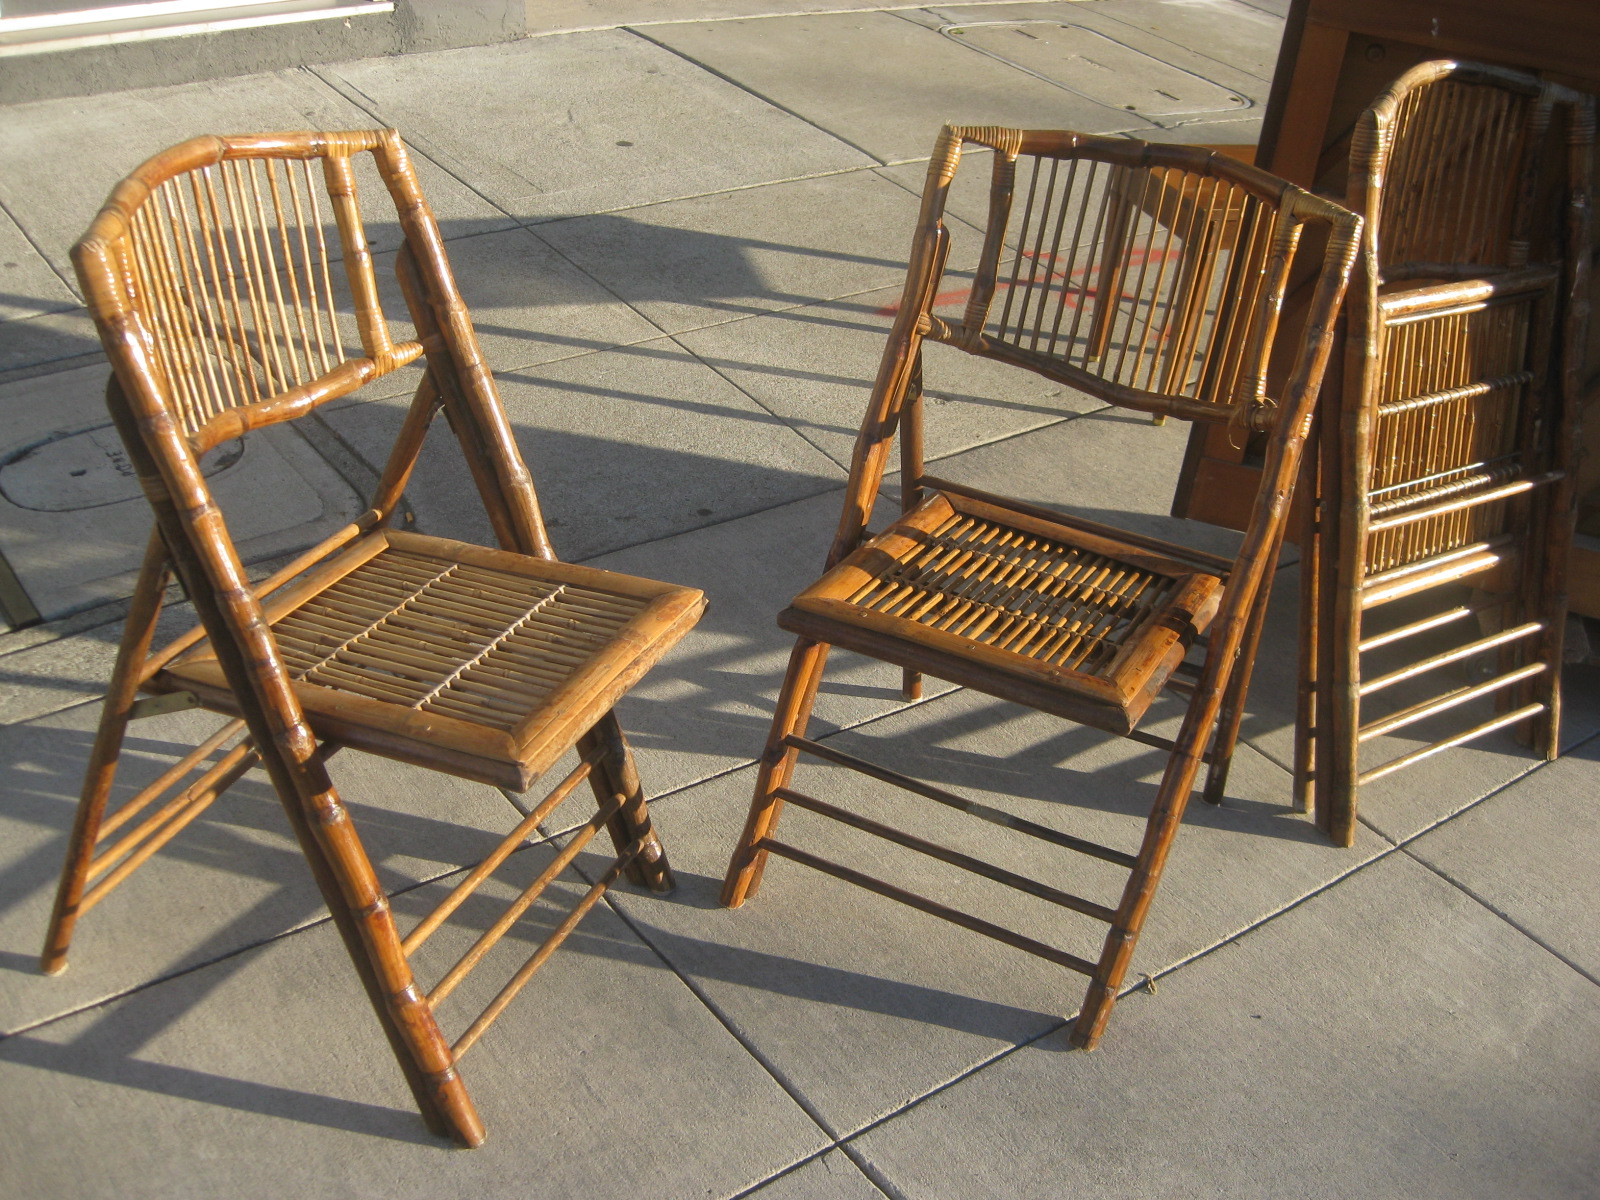 UHURU FURNITURE & COLLECTIBLES SOLD 3 Folding Wicker Chairs $60